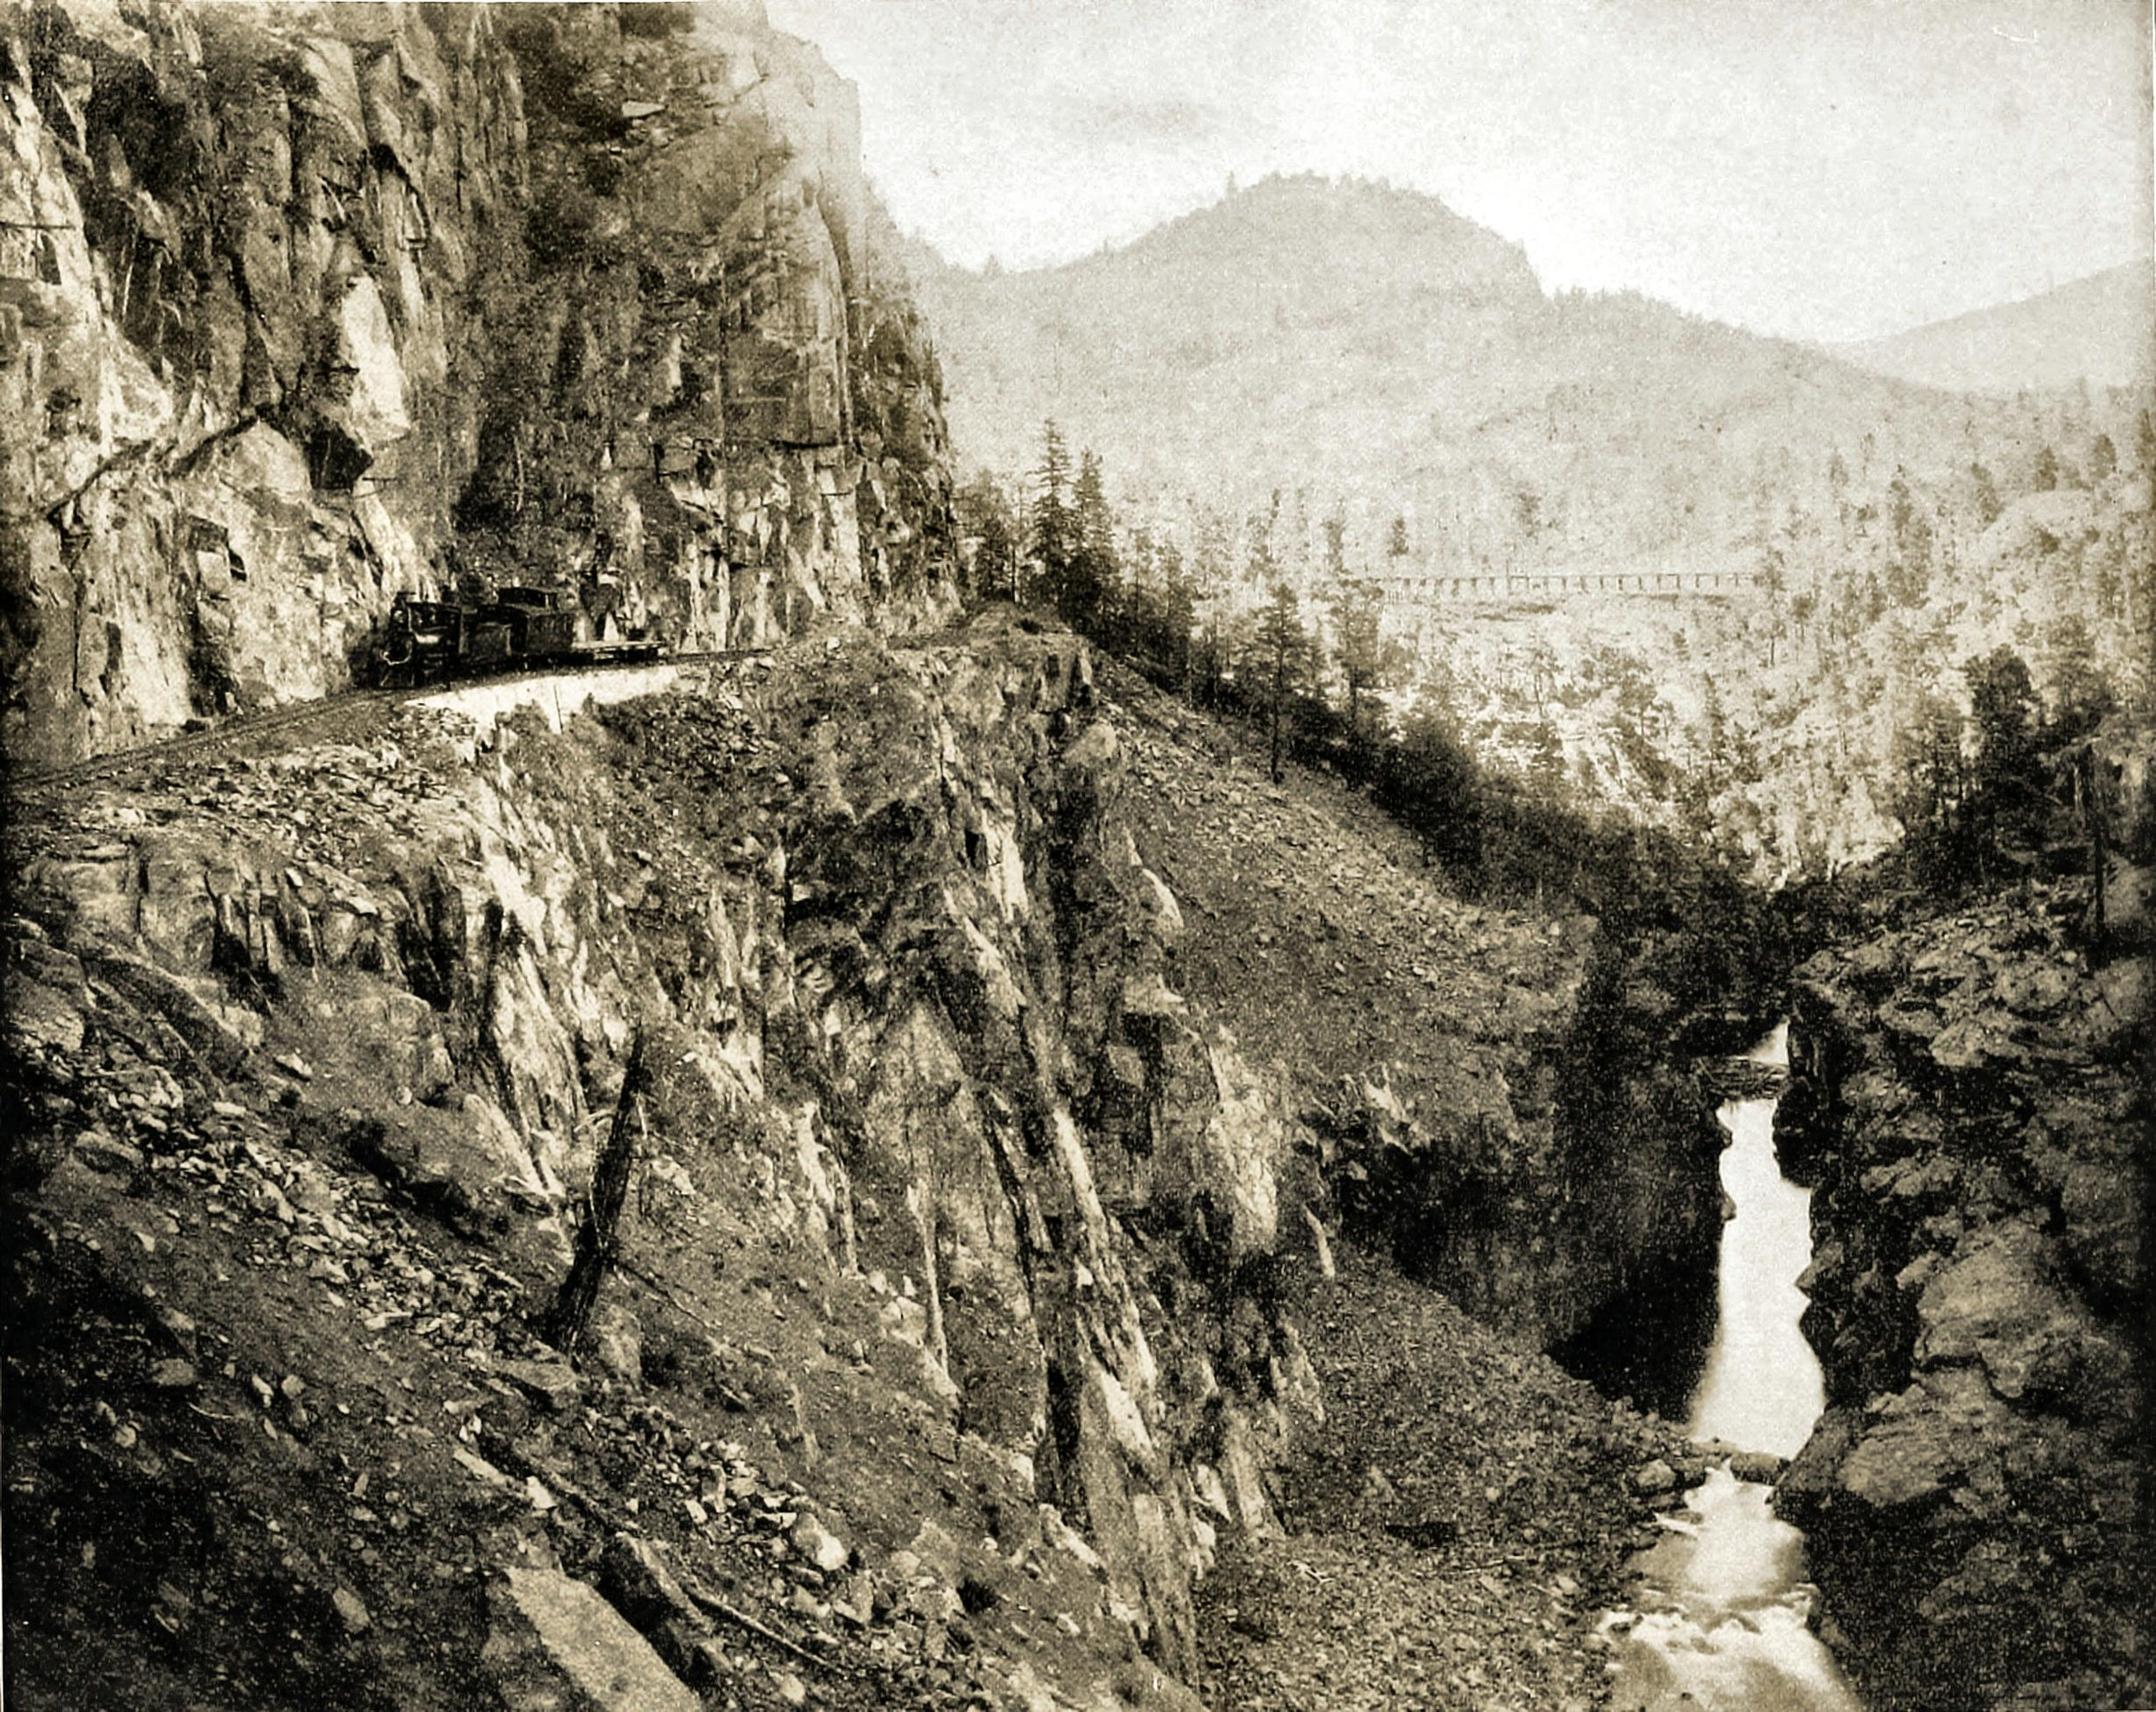 River of Lost Souls, Colorado, USA about 1892